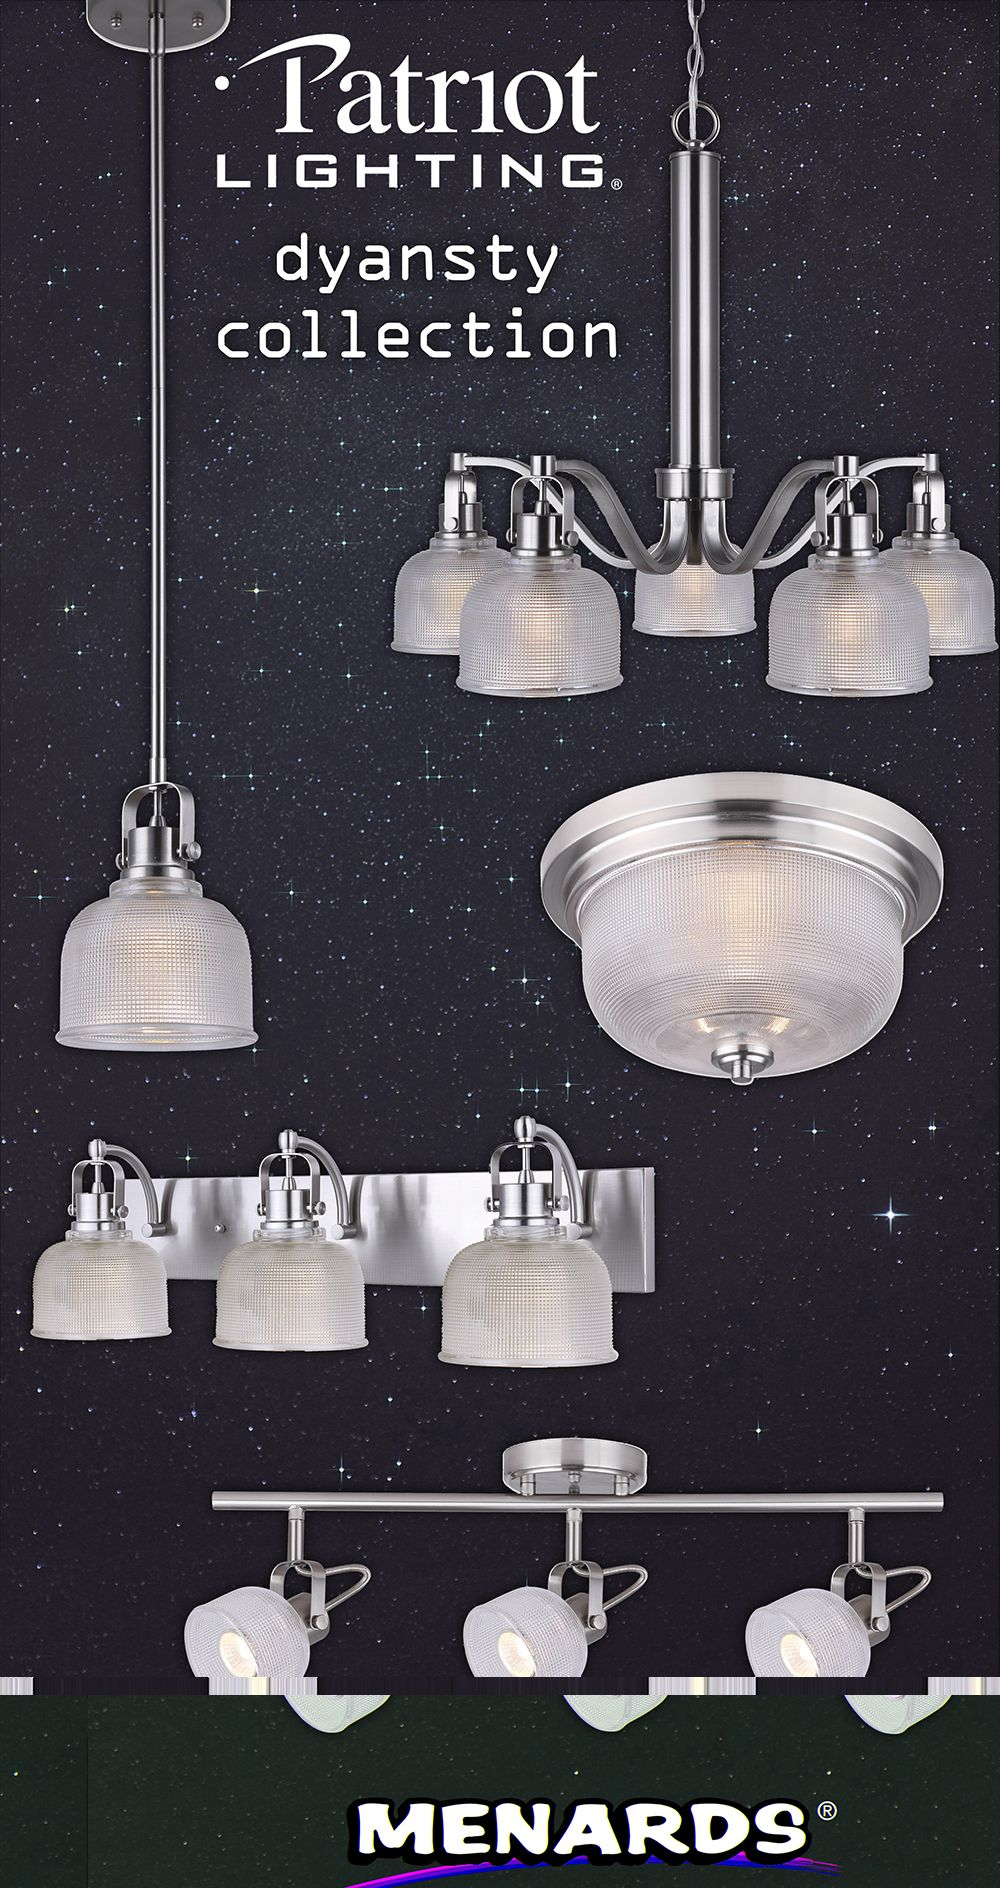 The Patriot Lighting Dynasty Collection Is Out Of